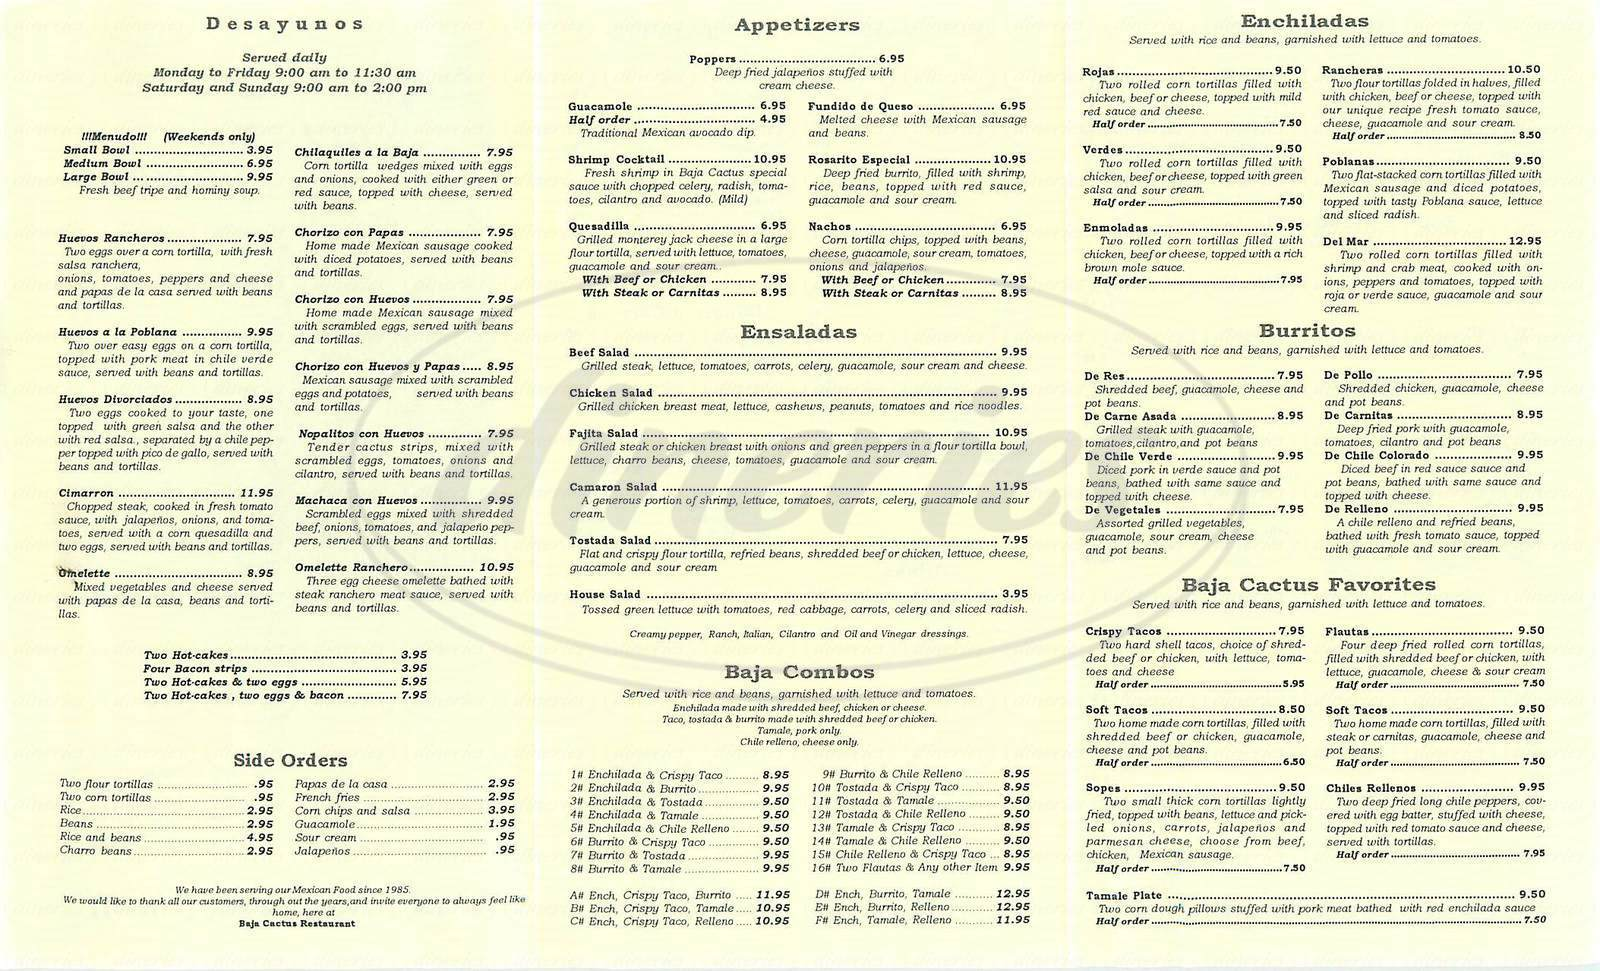 menu for Baja Cactus Restaurant